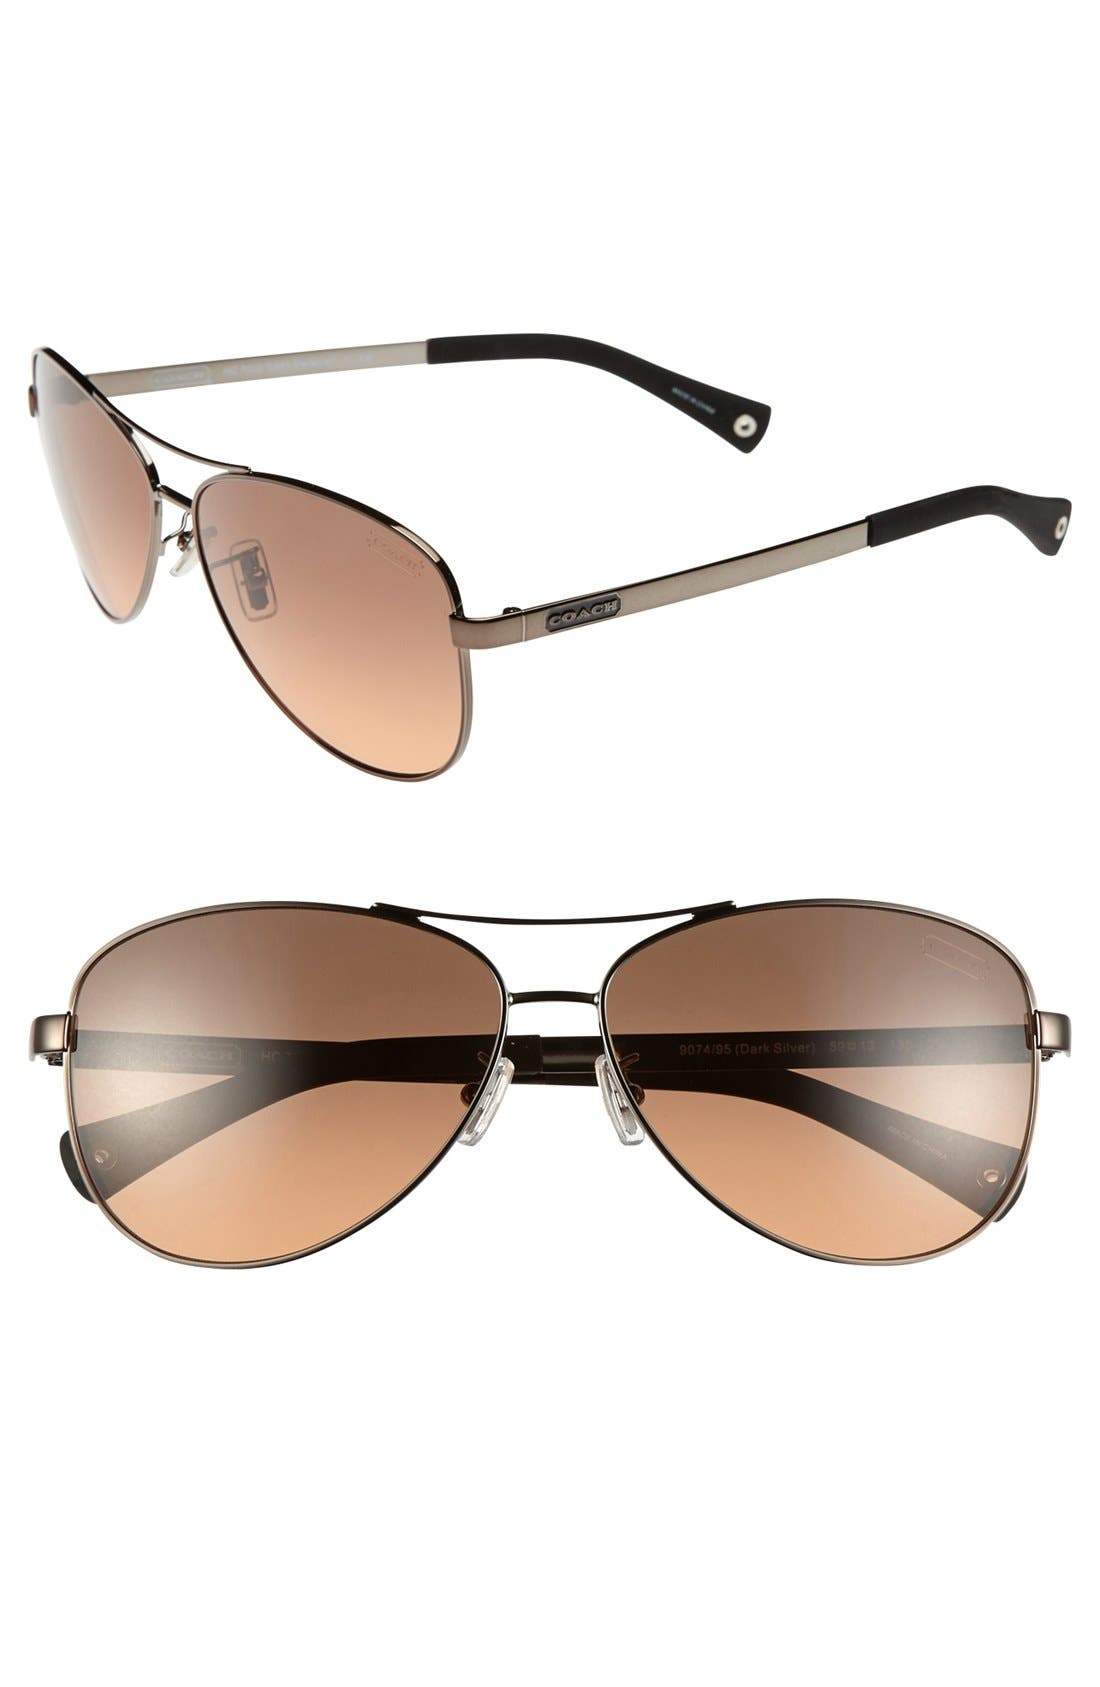 Alternate Image 1 Selected - COACH 59mm Aviator Sunglasses